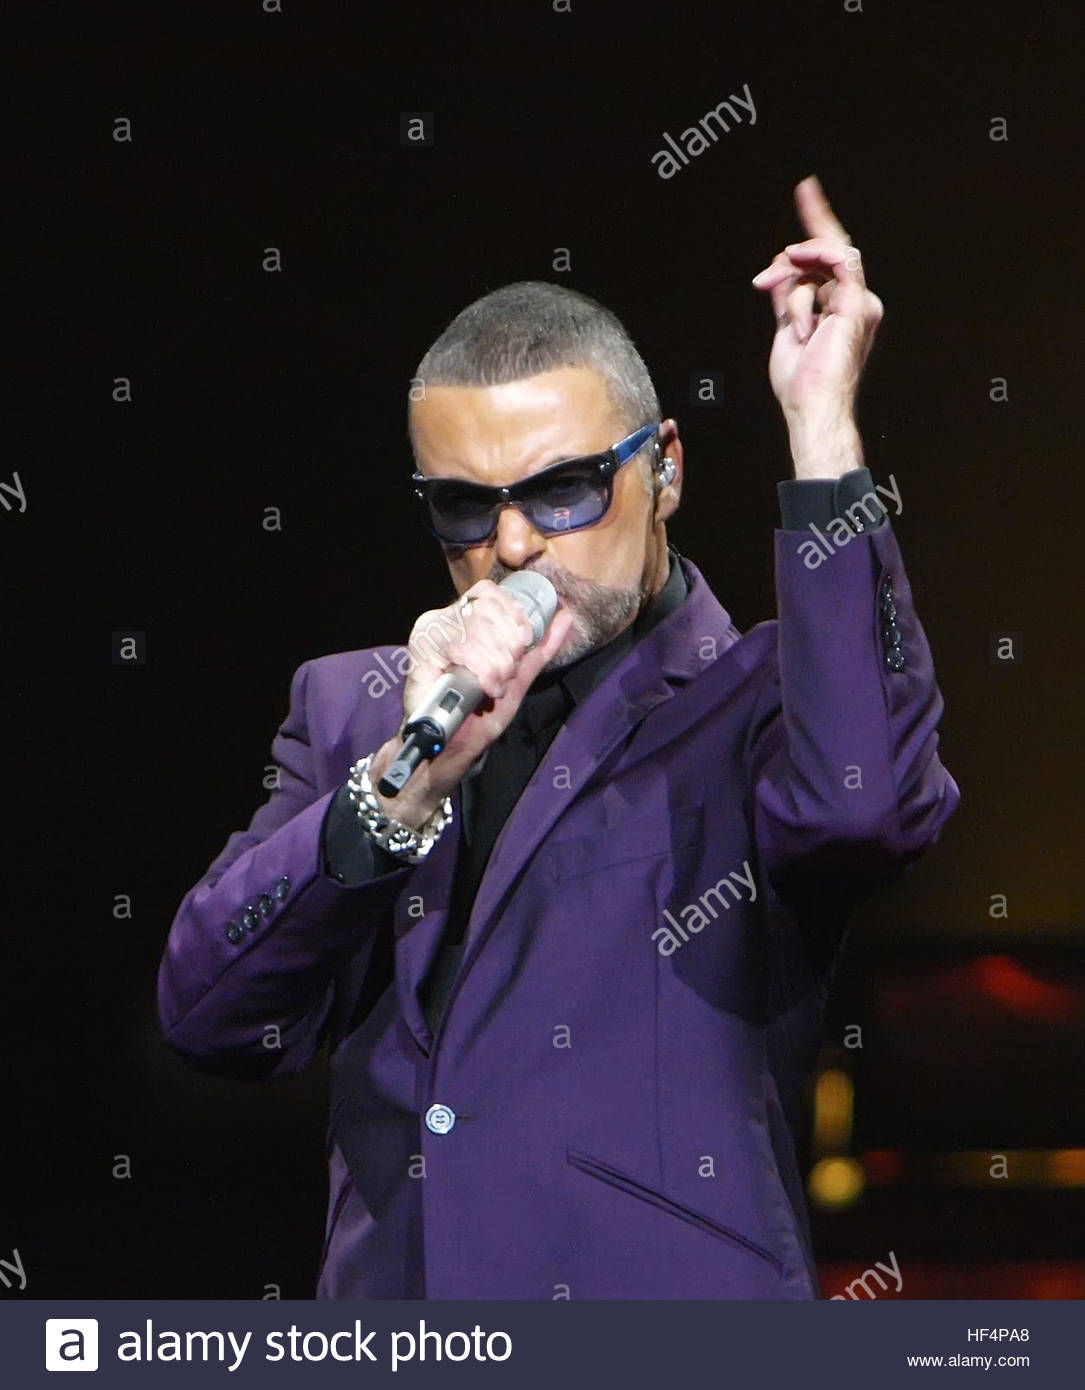 File photo dated 29/09/12 of George Michael in concert at the Royal Albert Hall, London during his Symphonica Tour, - Stock Image